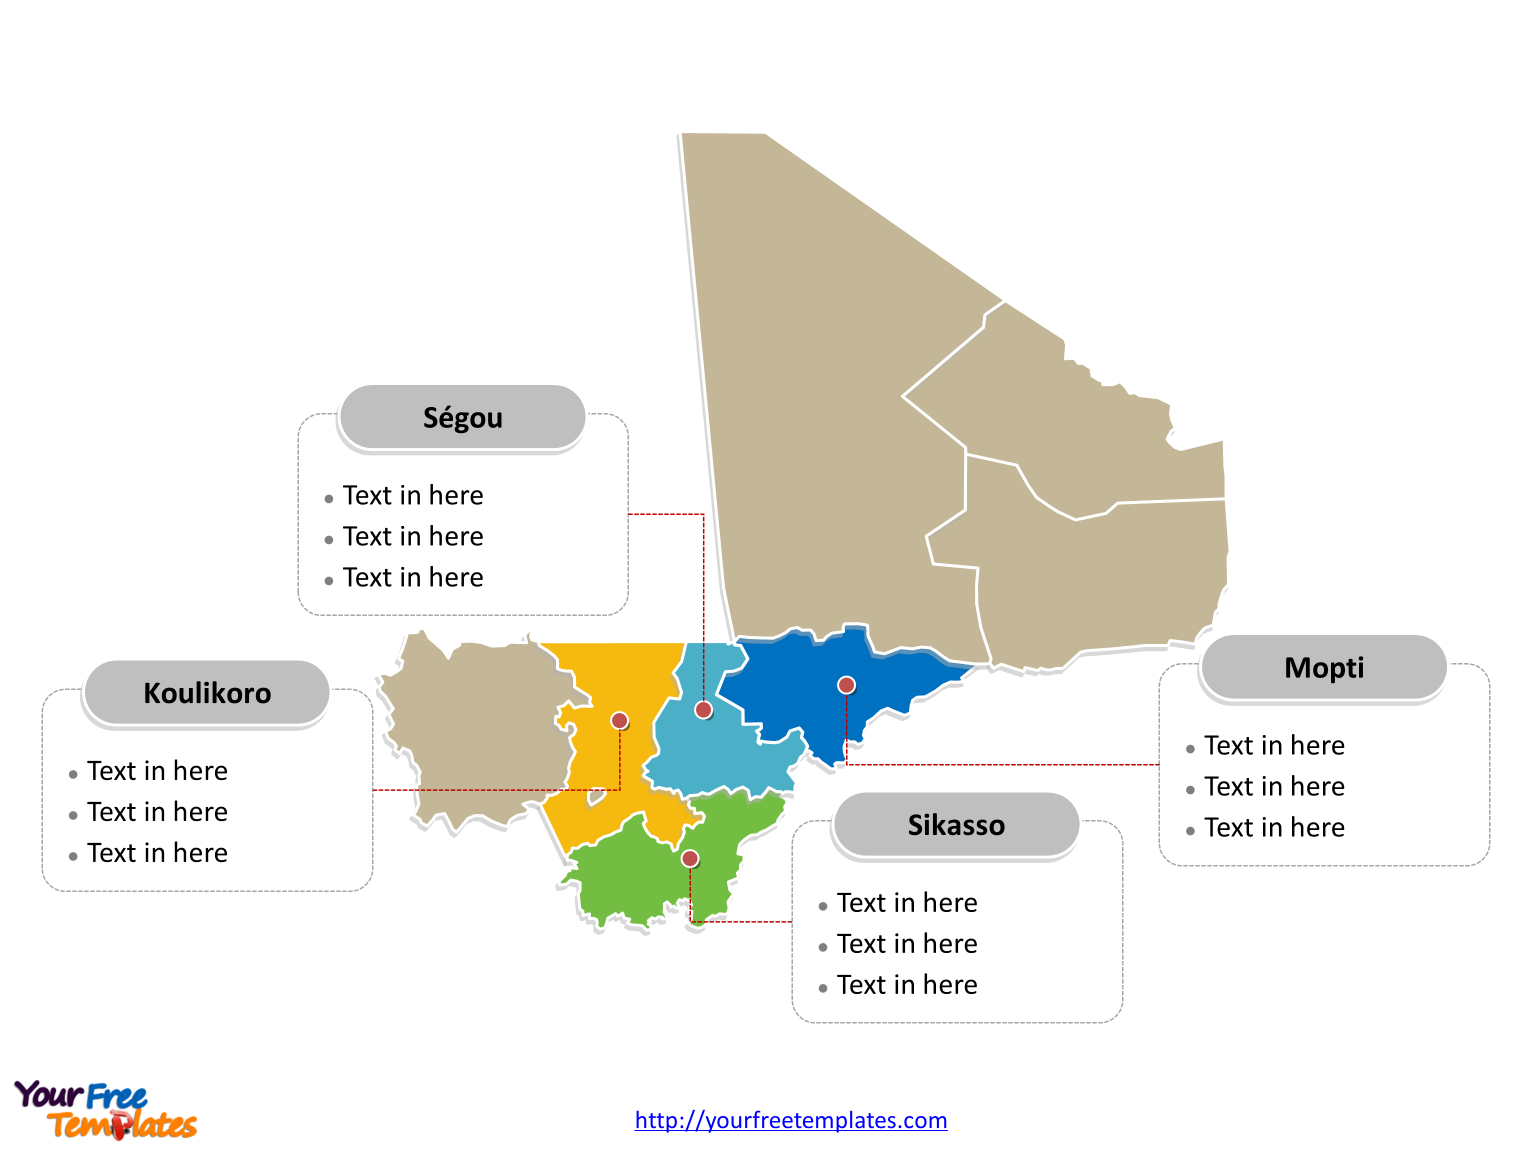 Mali Political map labeled with major regions